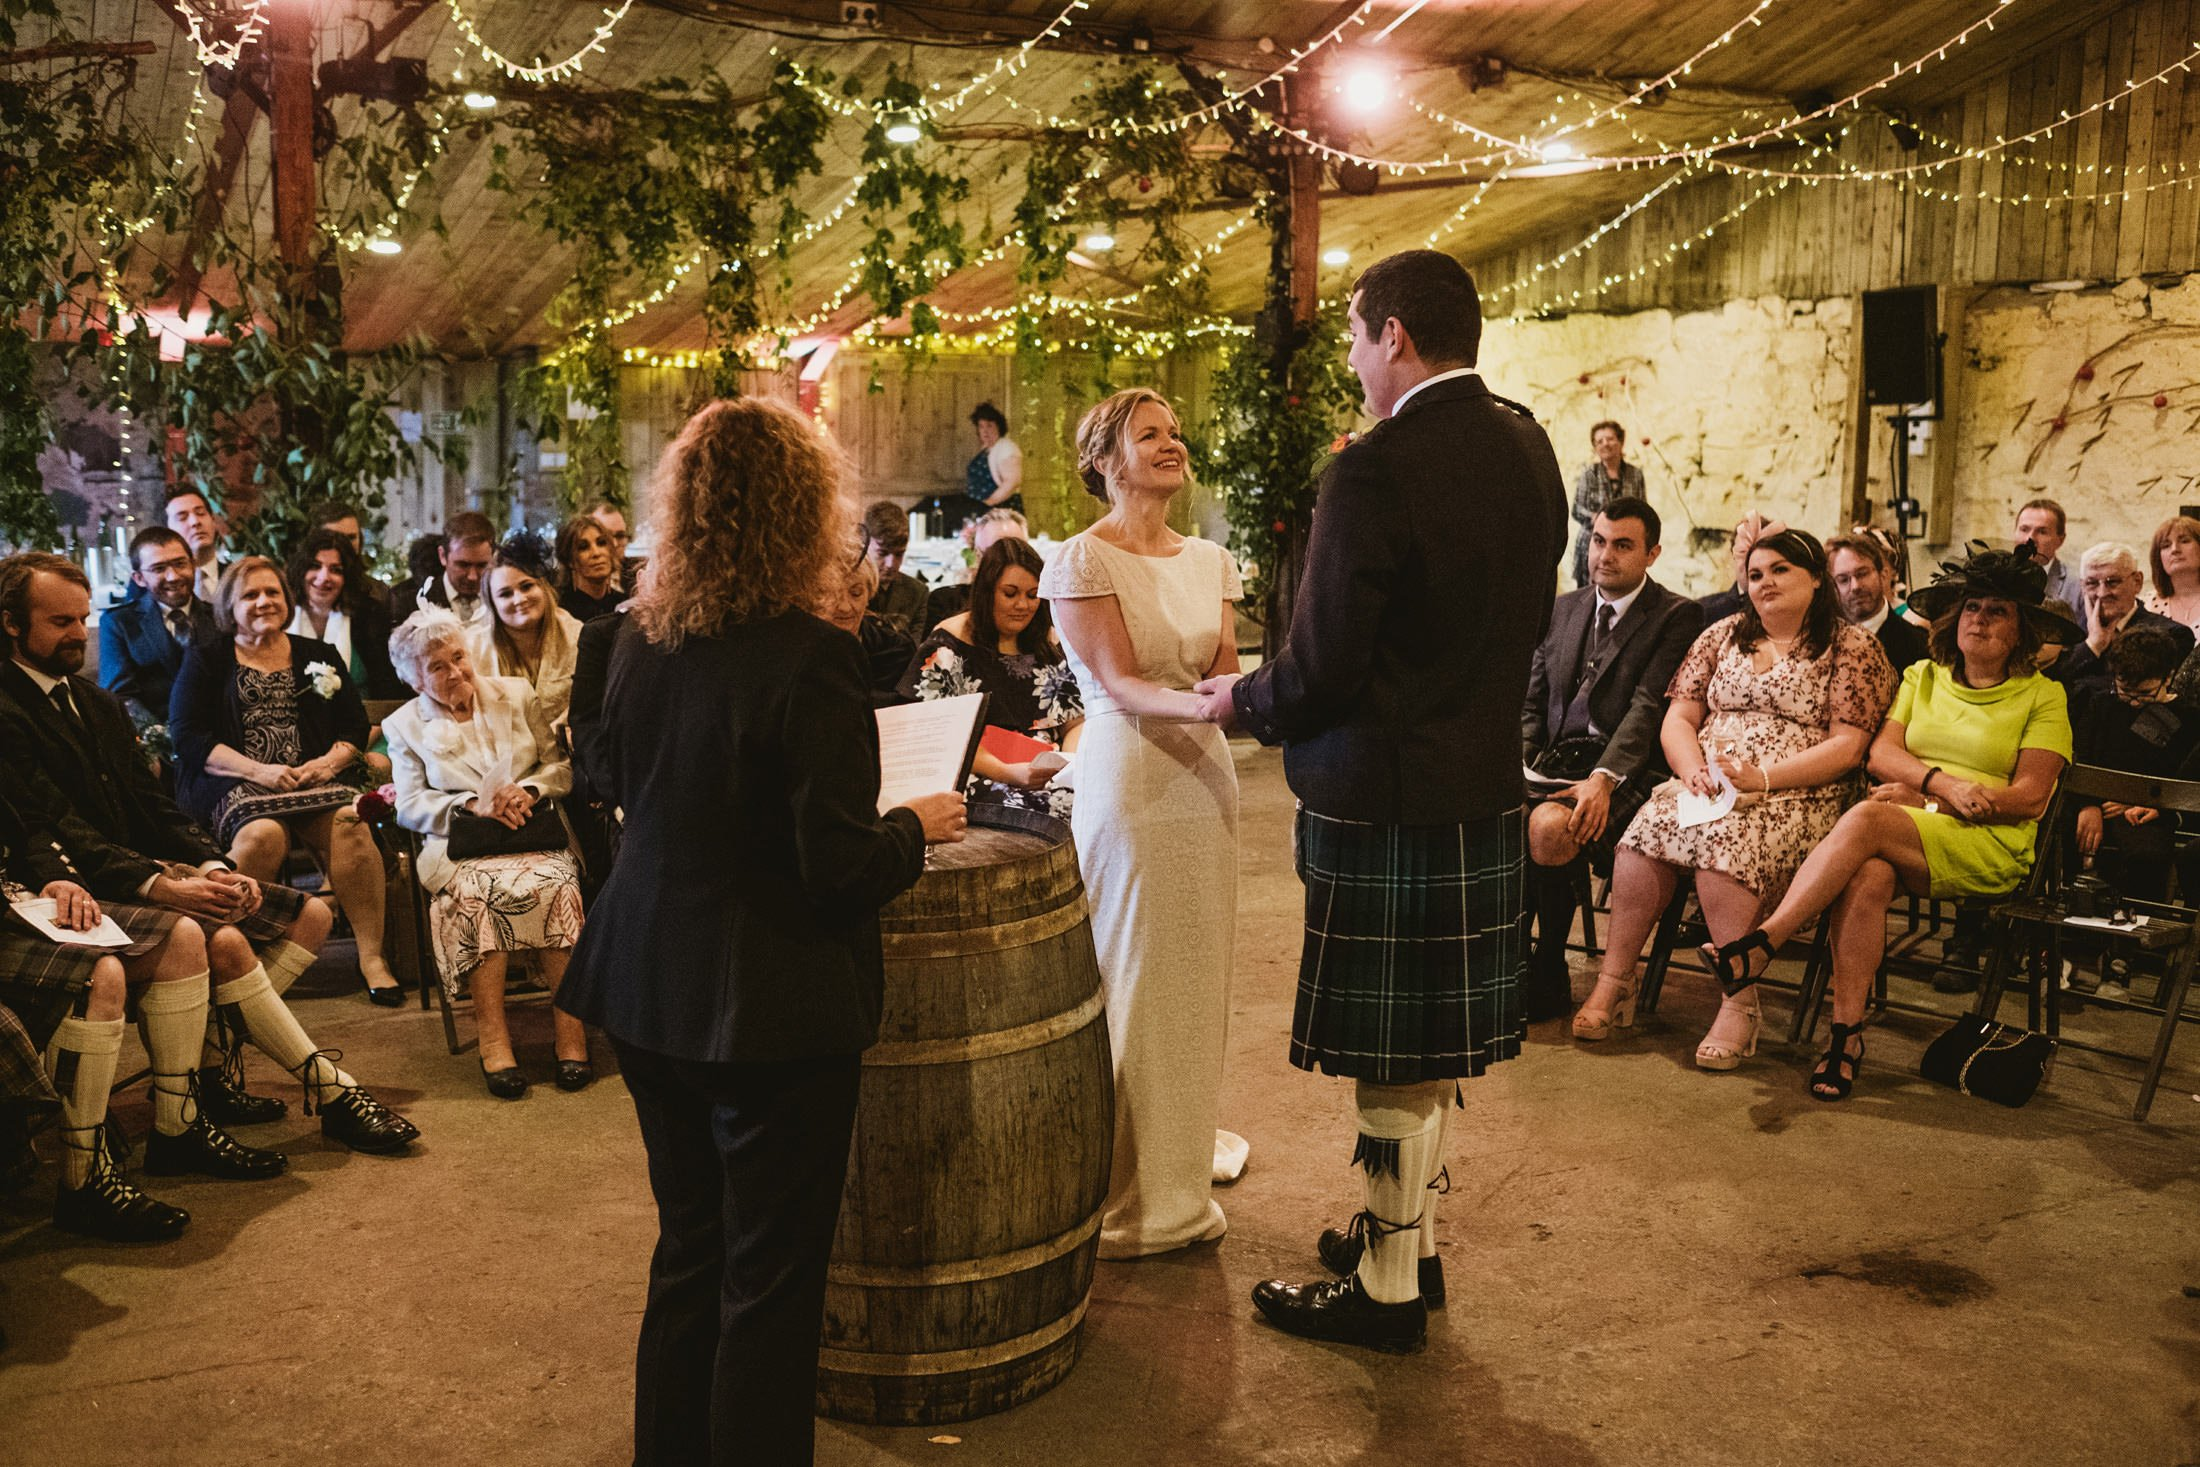 bride and groom giving their vows during the wedding ceremony at Comrie Croft